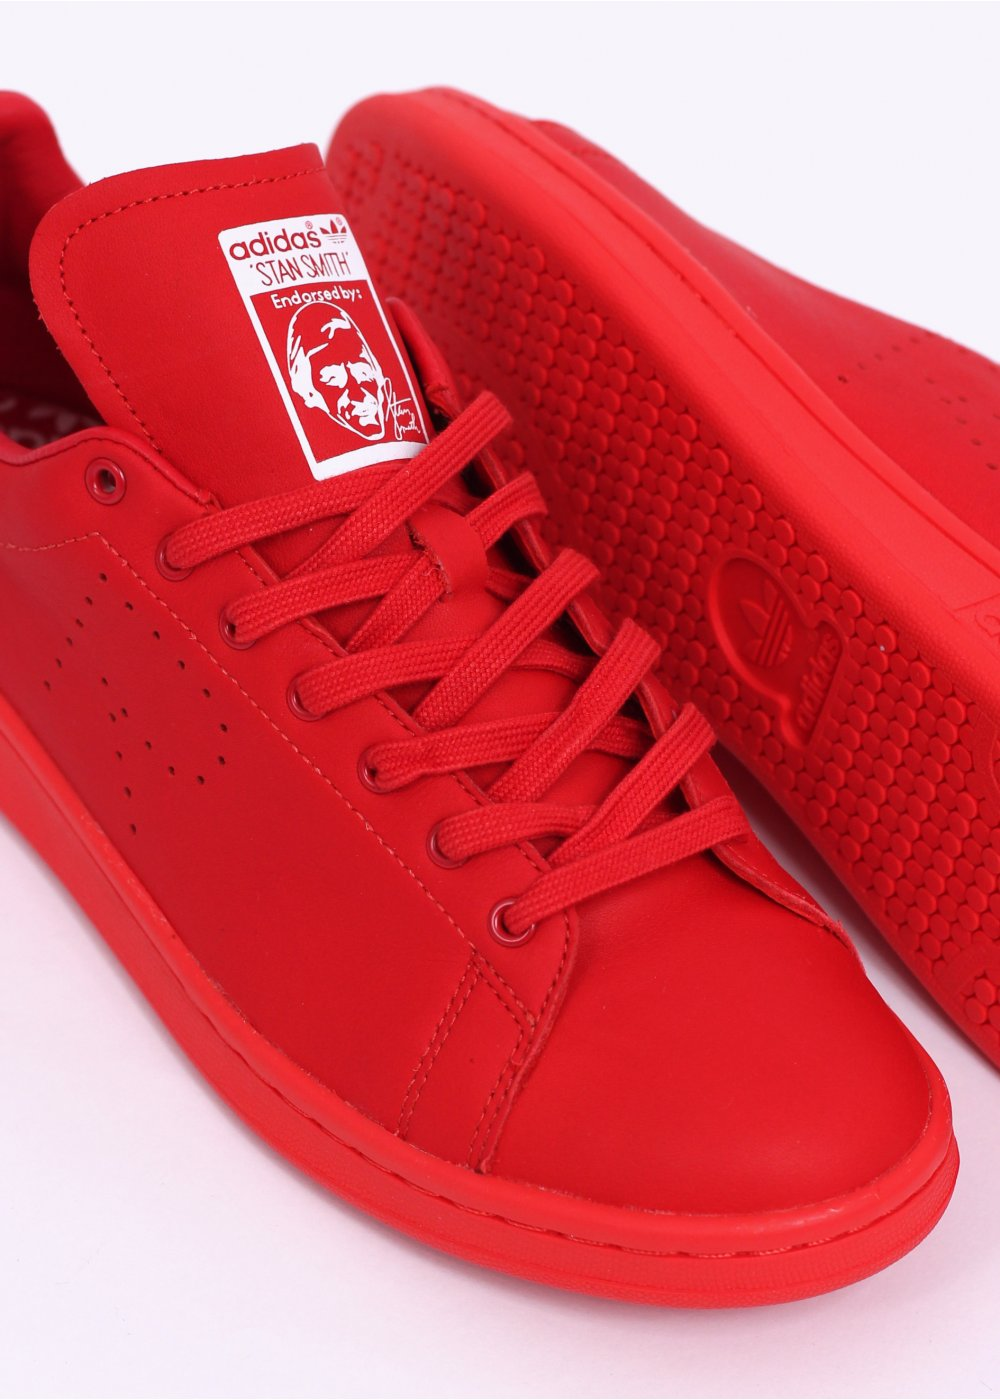 adidas Originals x Raf Simons Stan Smith Trainers - Red   White de3aba19d